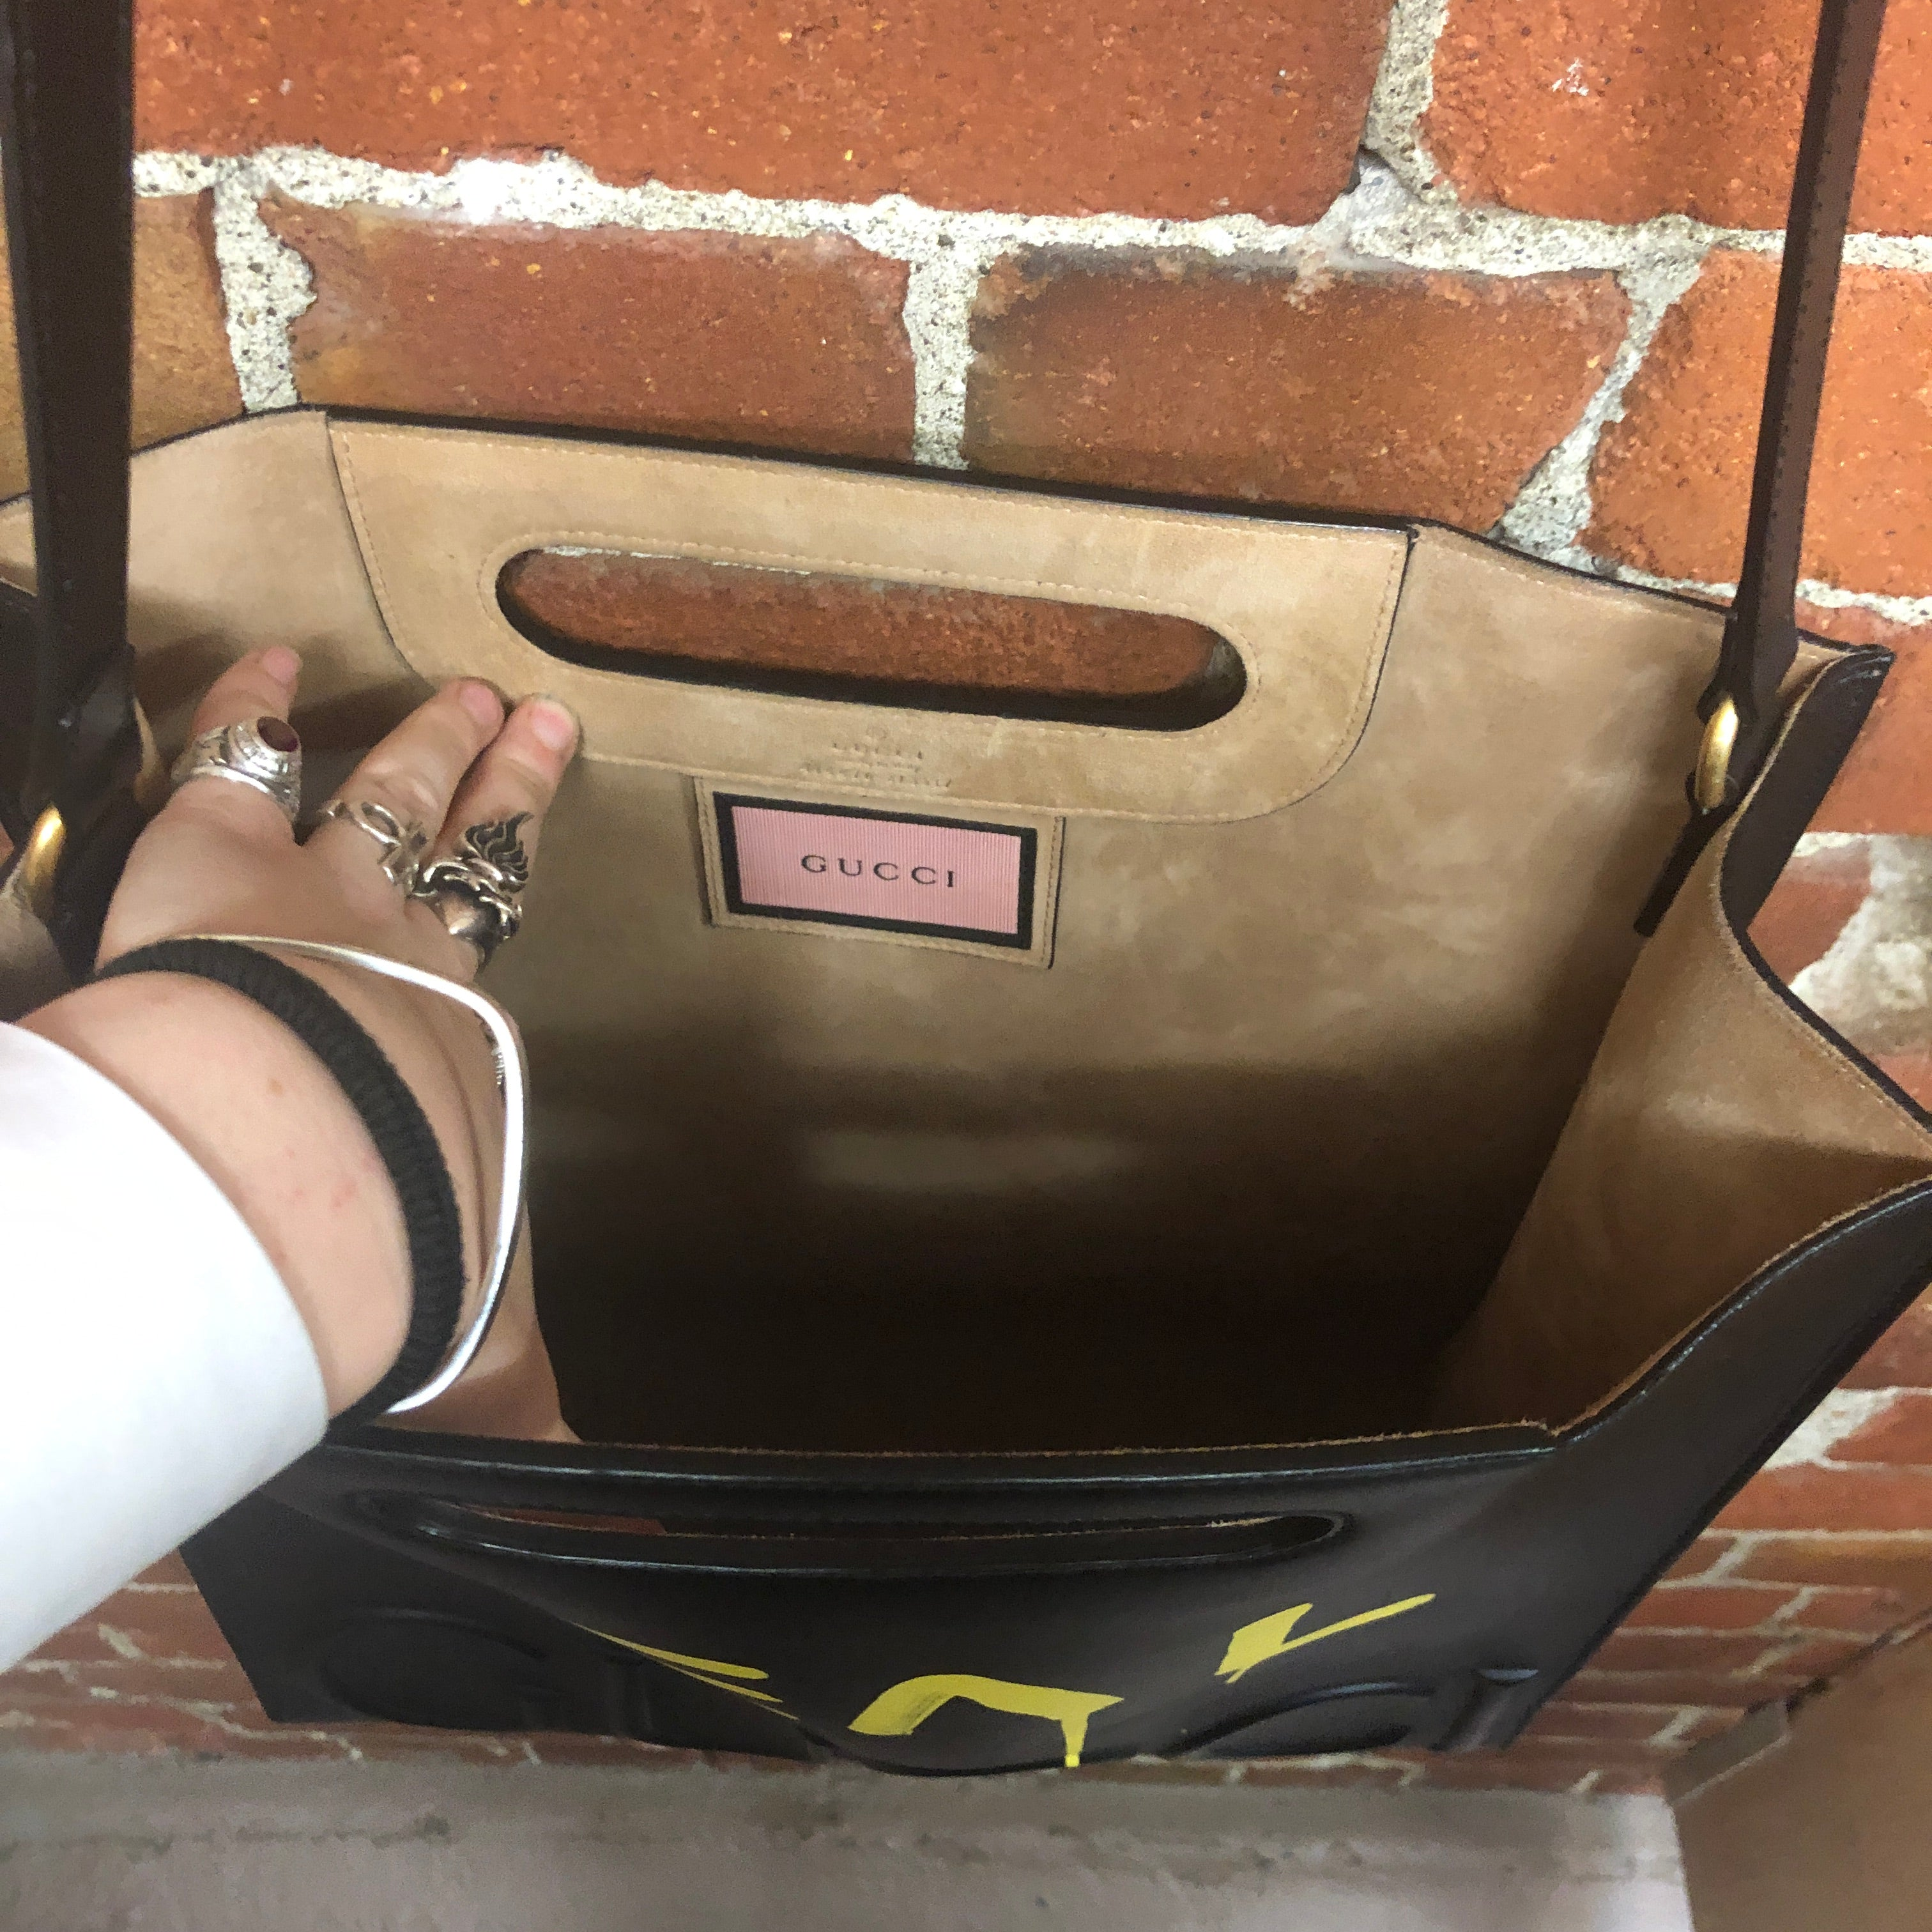 GUCCI GHOST iconic 'REAL GUCCI' leather tote bag